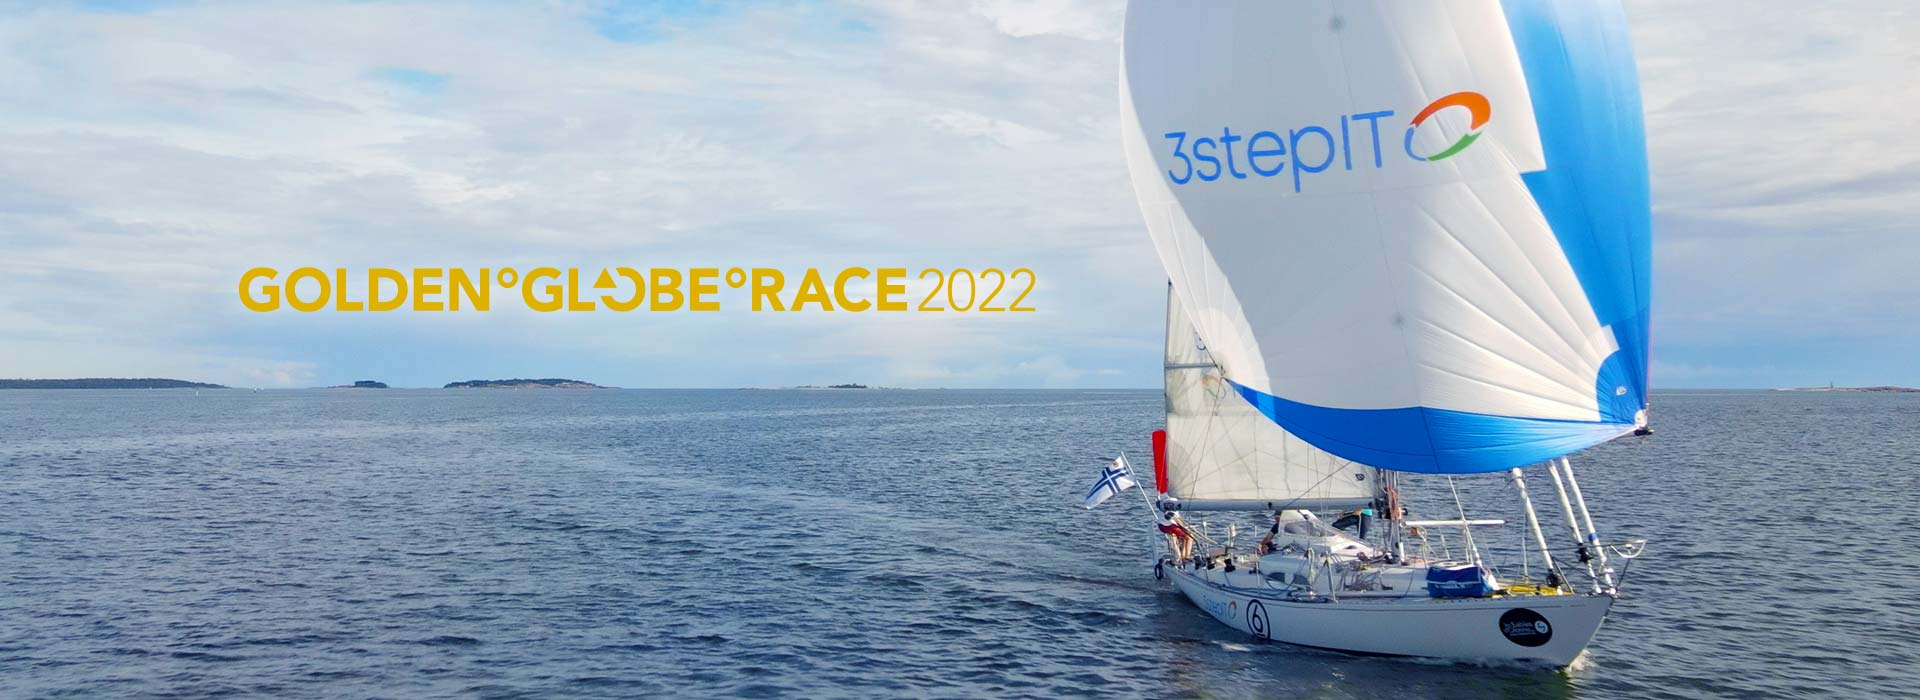 Asteria heading towards Golden Globe Race 2022